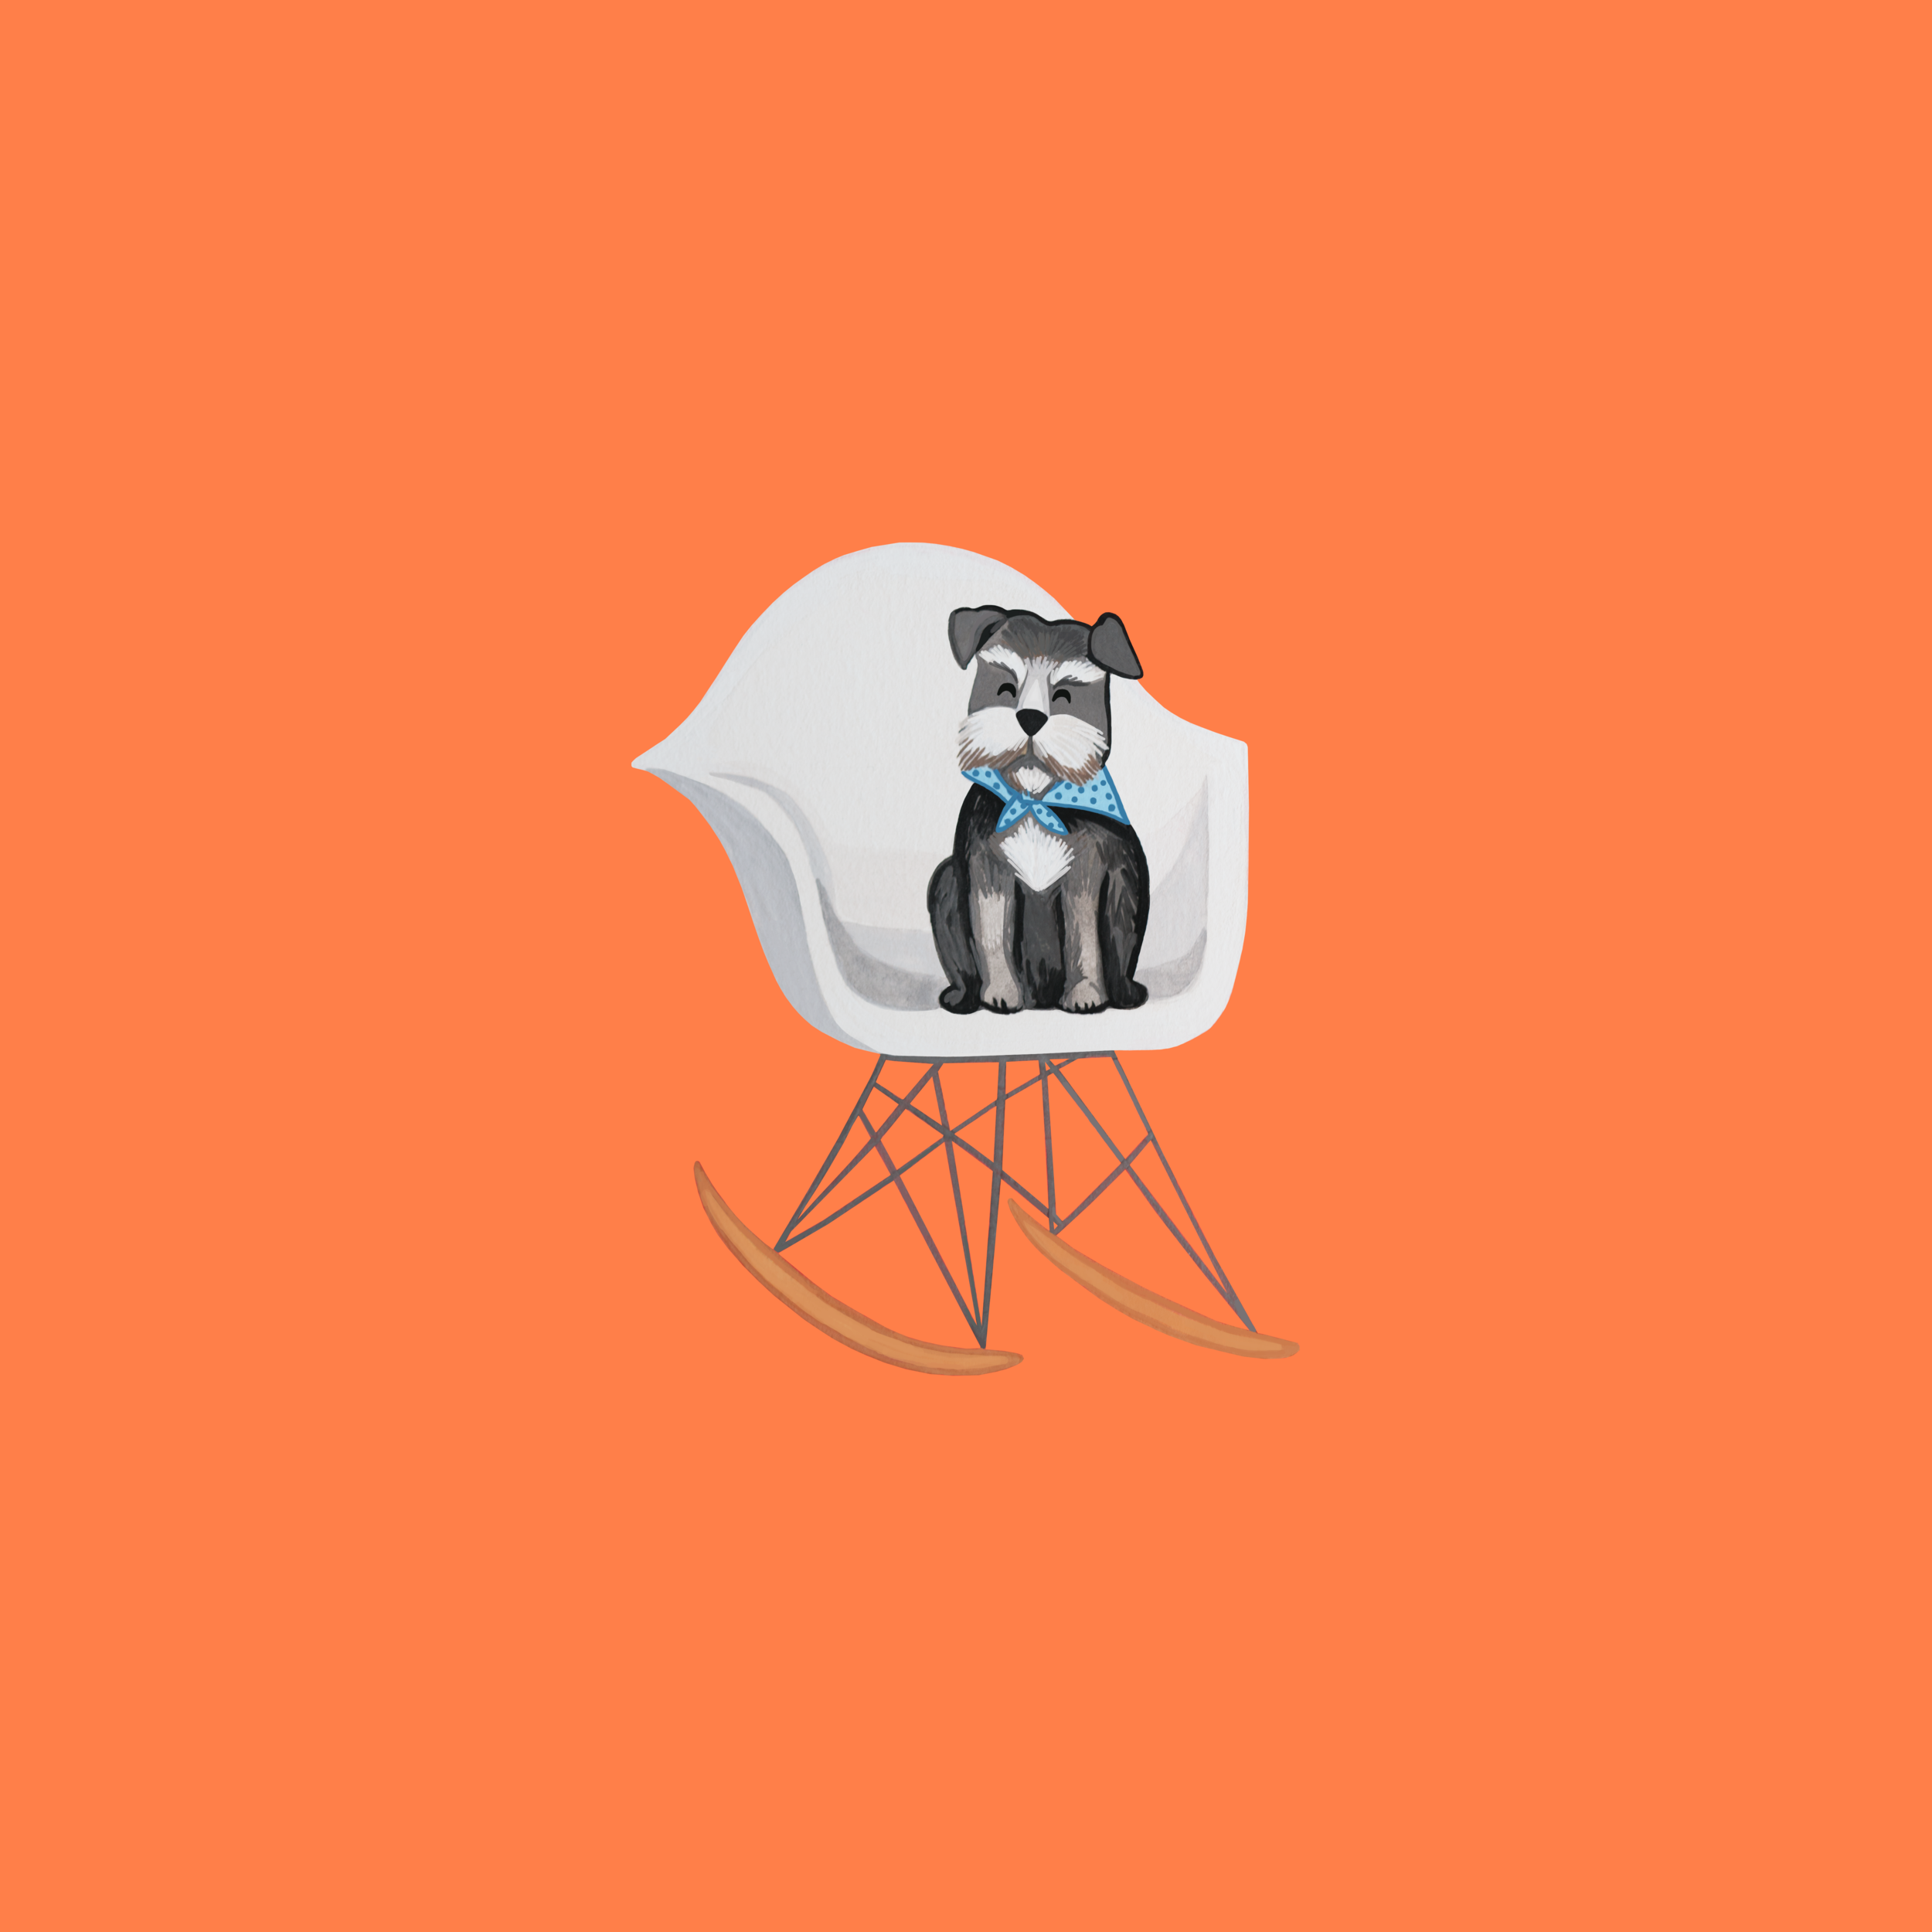 scottie dog on chair4.png